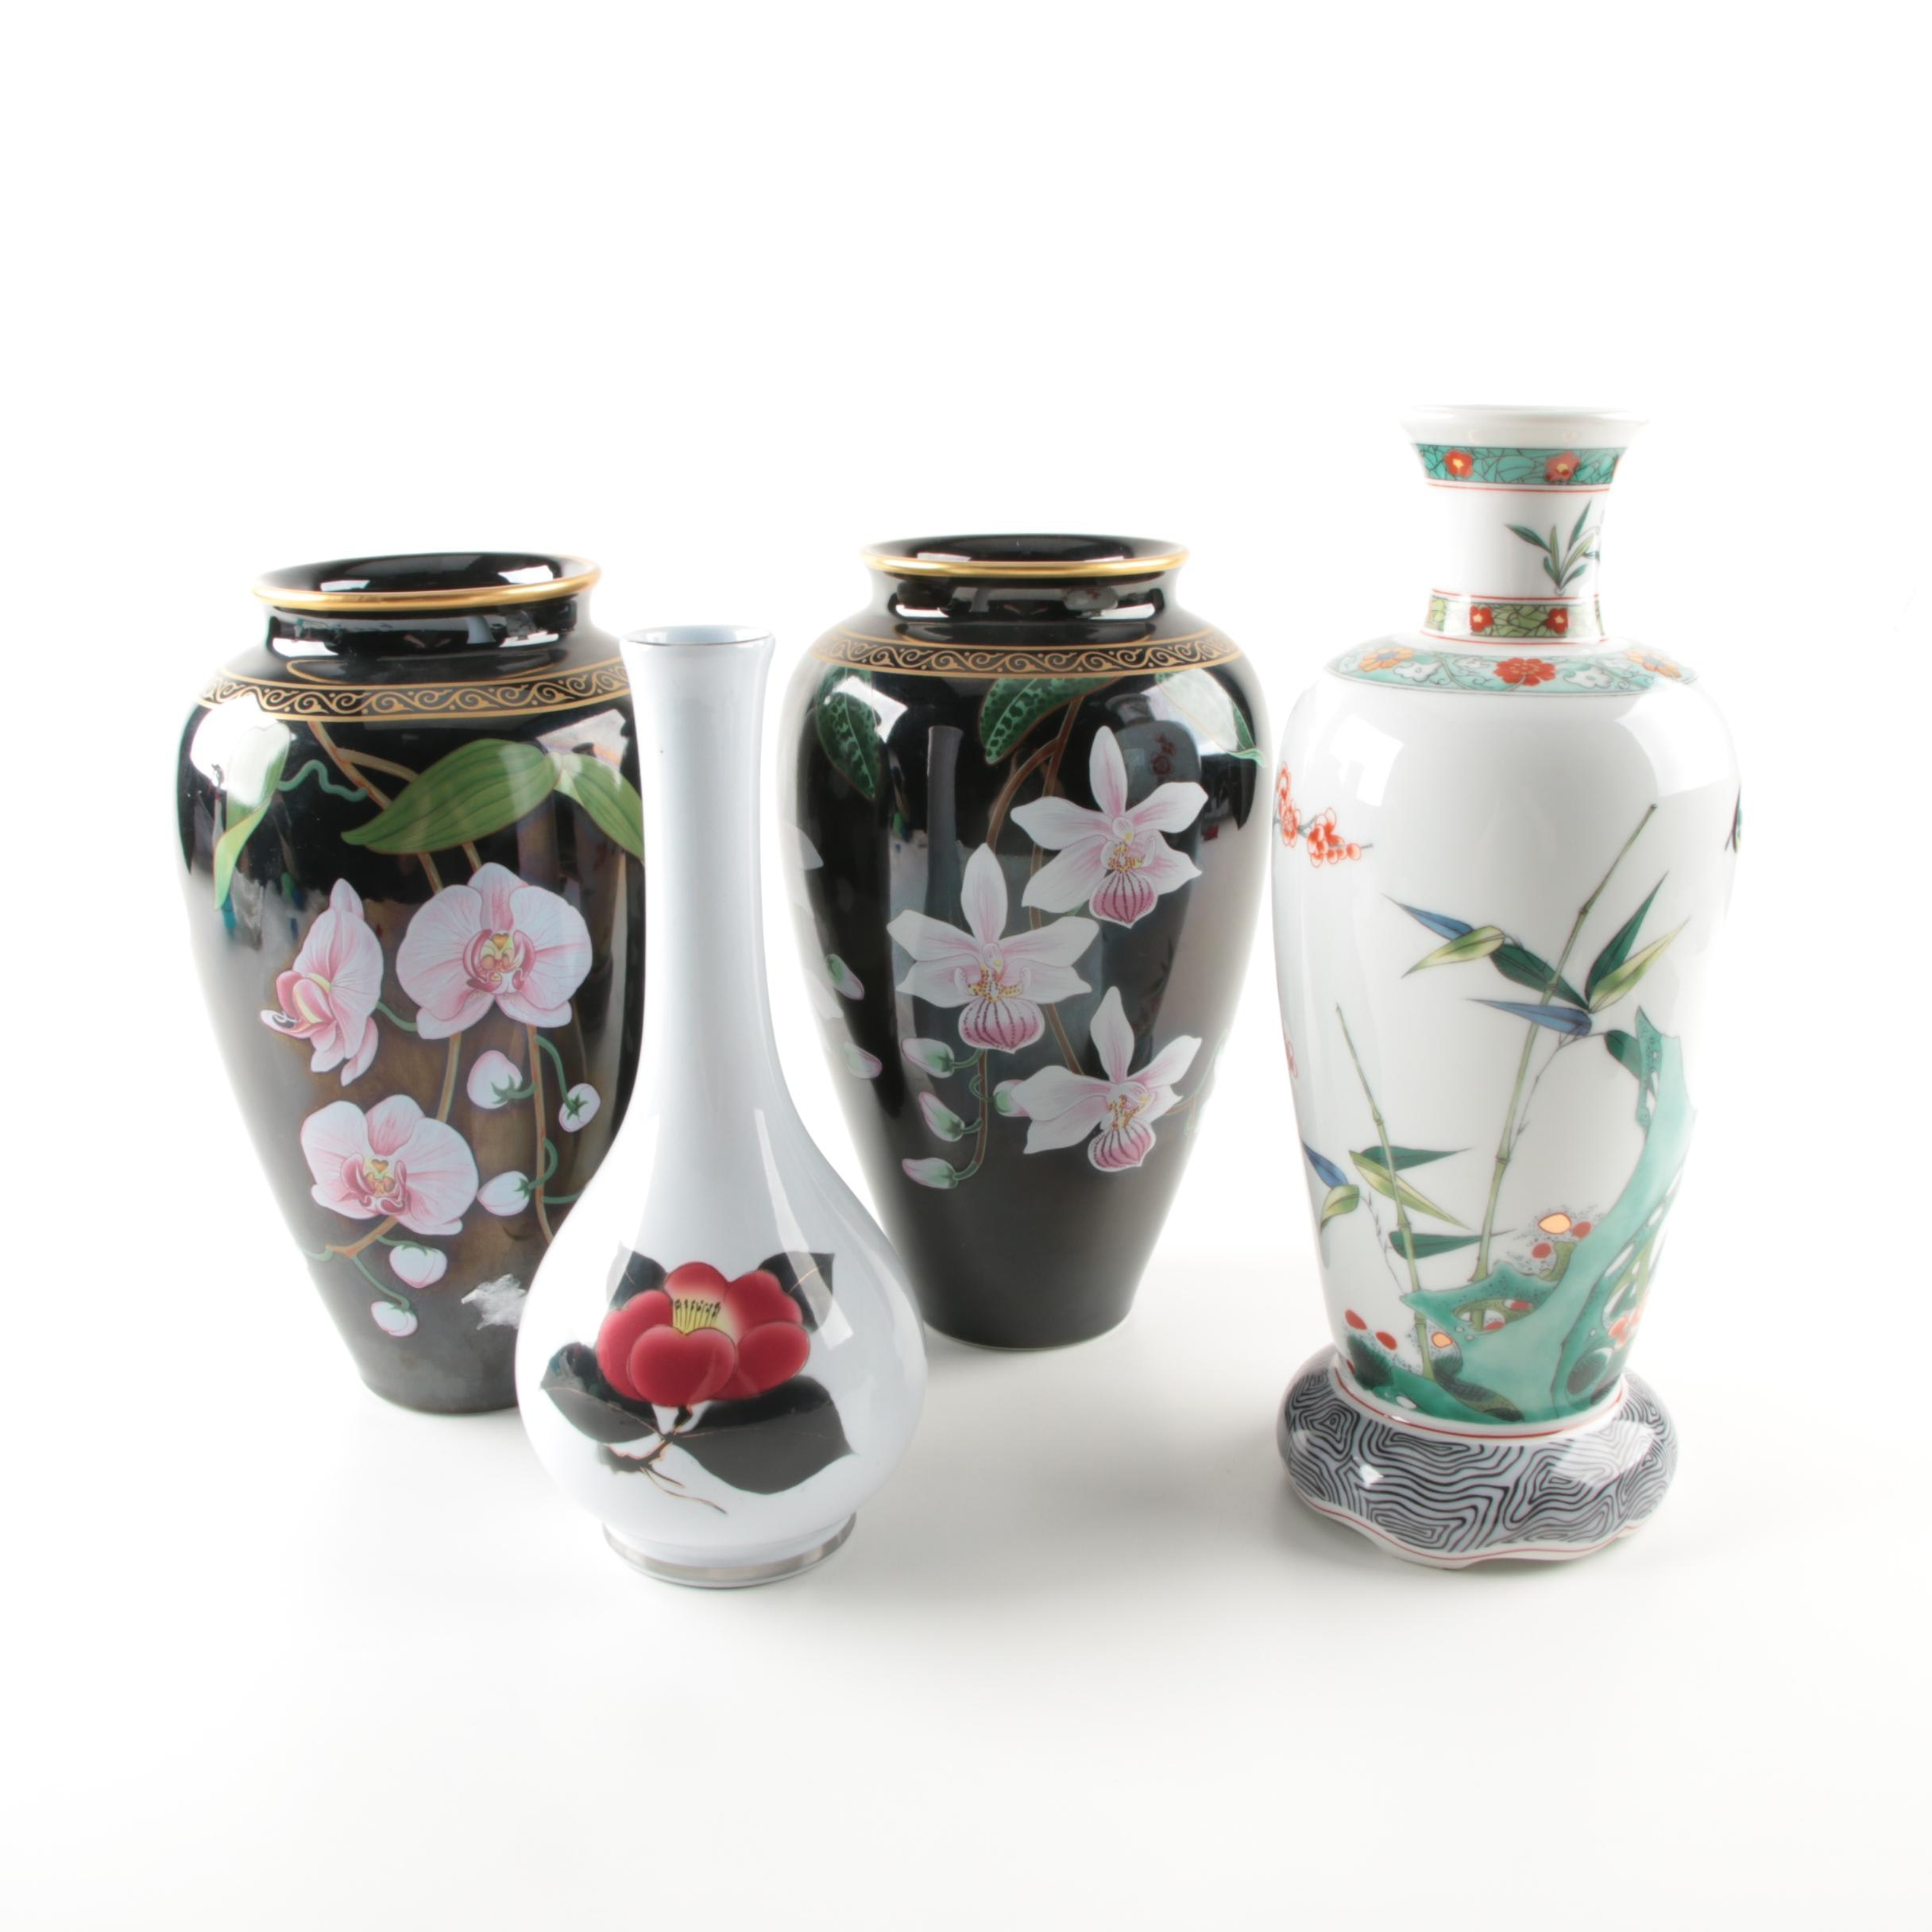 Franklin Mint Replica Chinese Porcelain Vases and a Japanese Vase